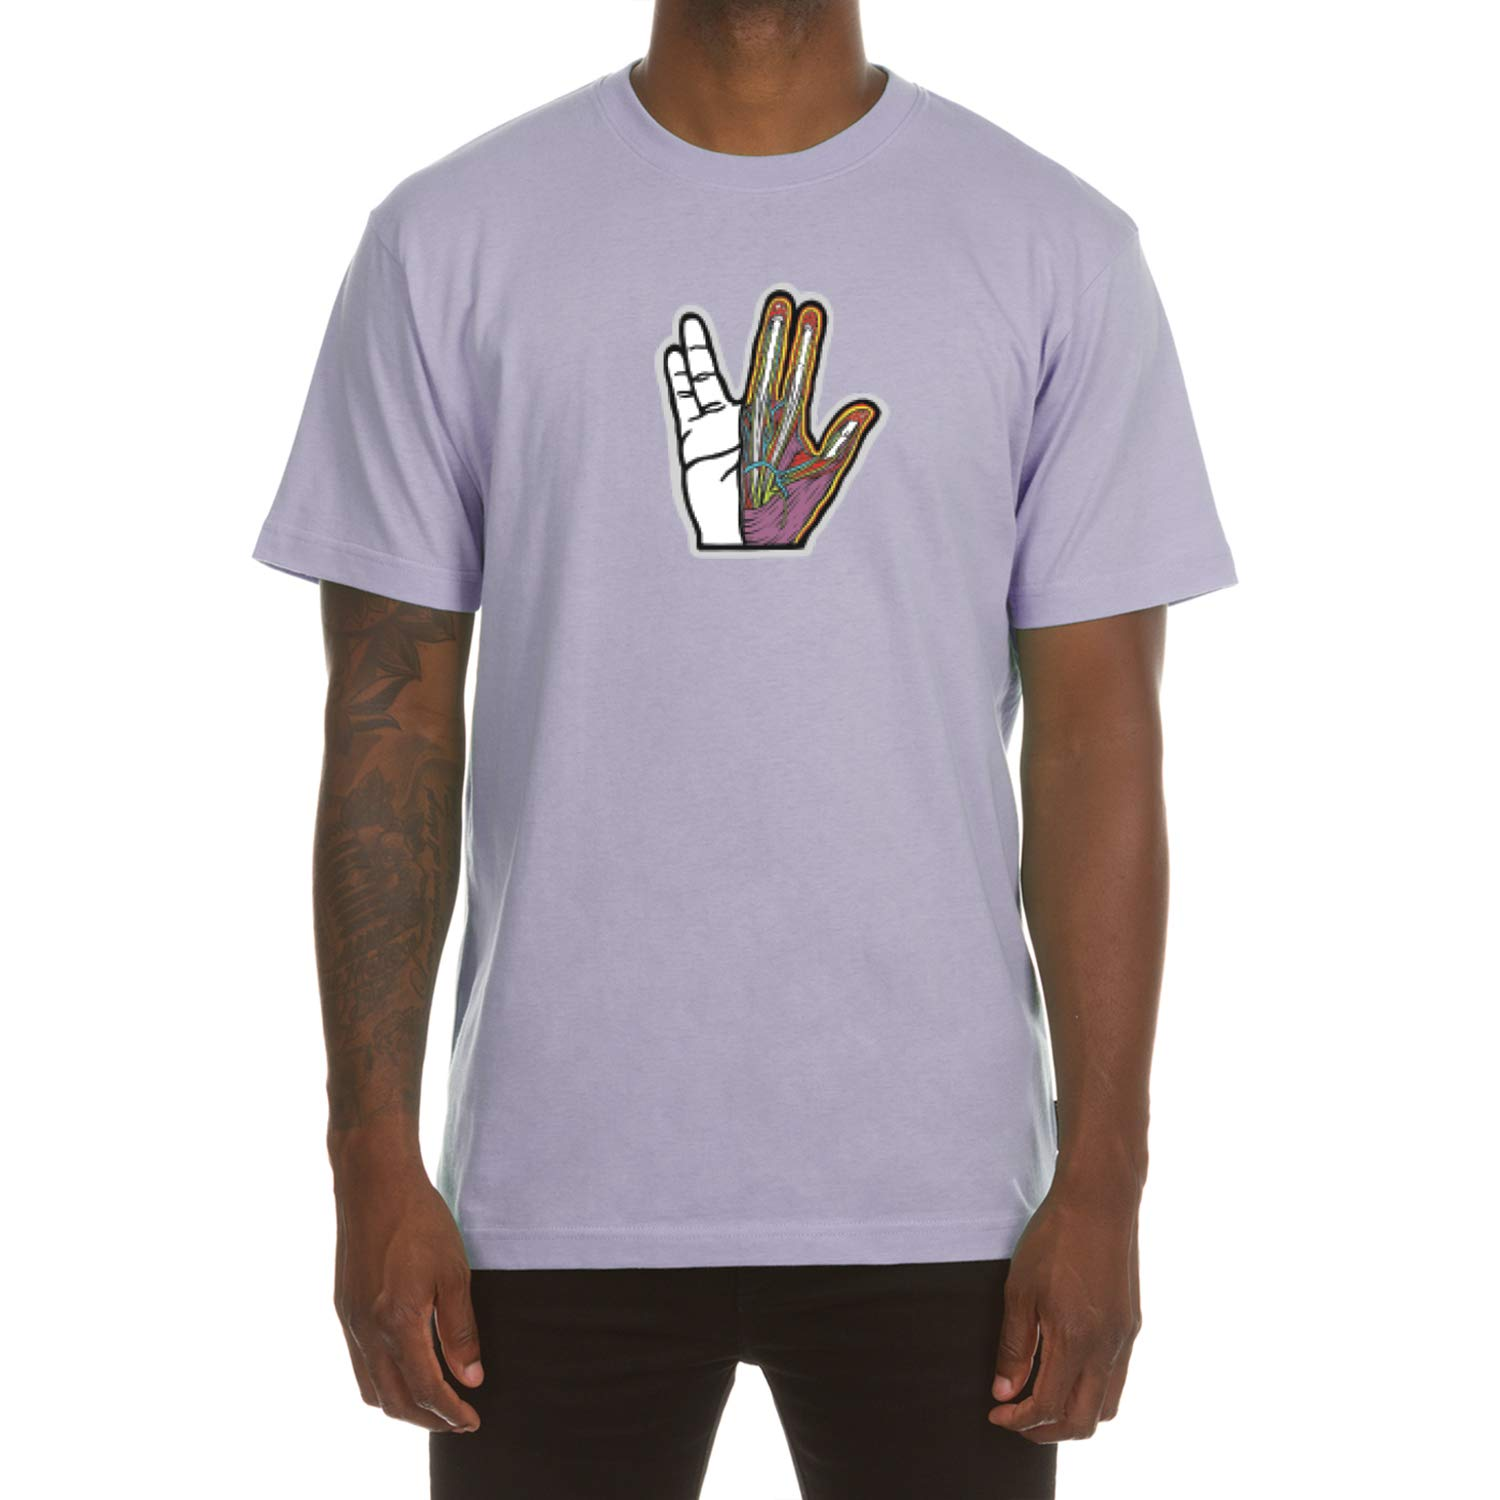 ICECREAM Live Long Short Sleeve Tee in 3 Color Choices 491-2205